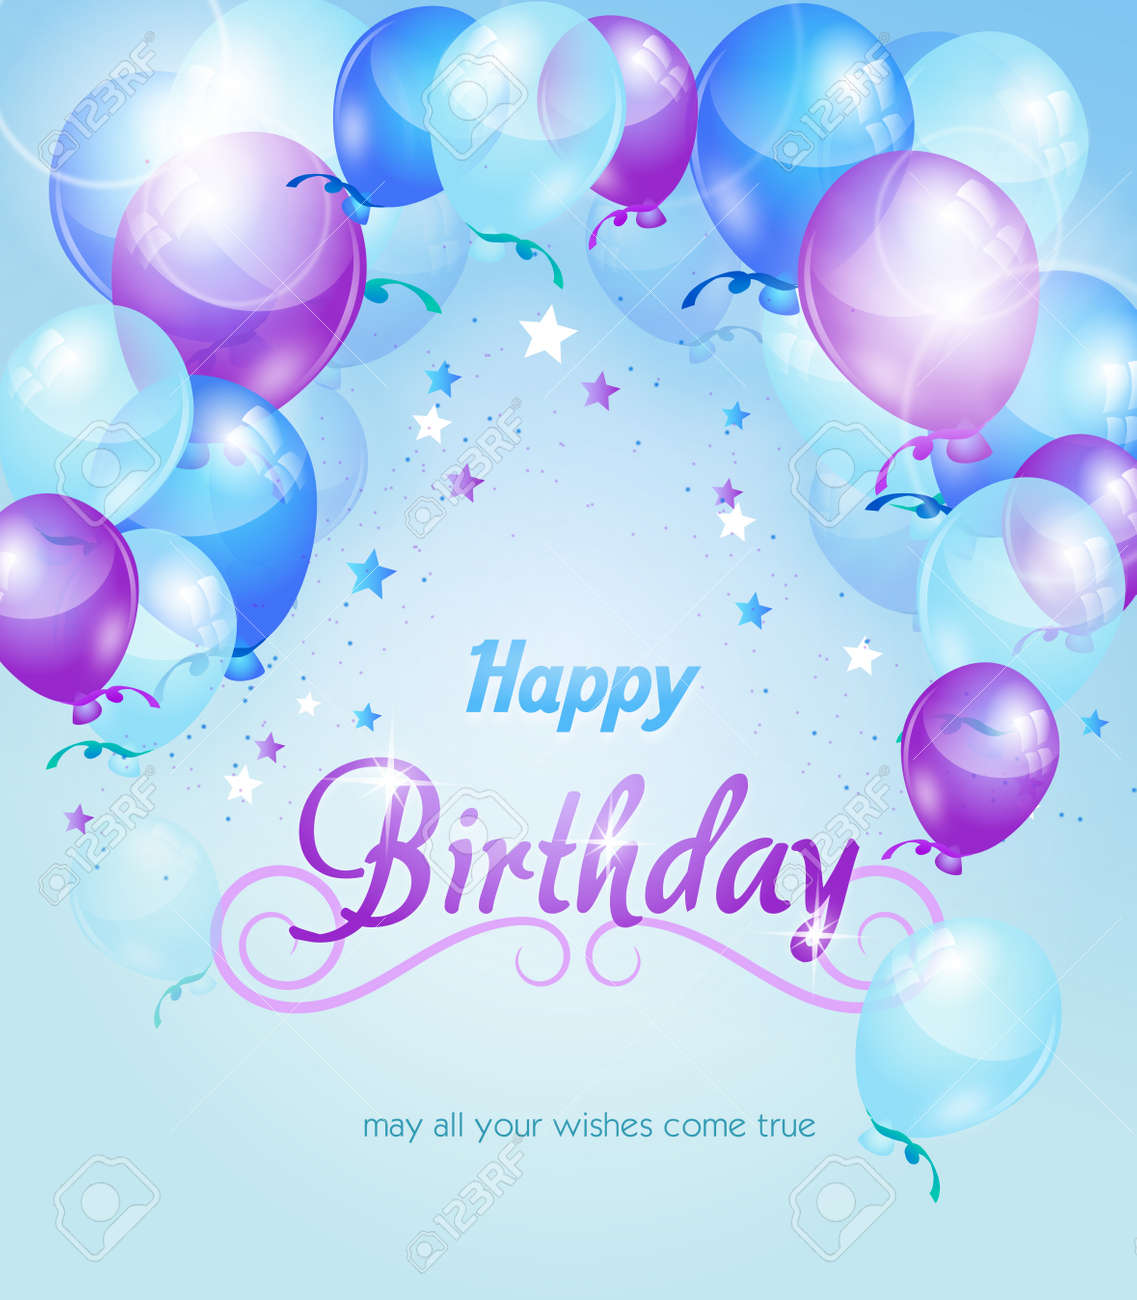 Blue Purple Birthday Background With Balloons And Text